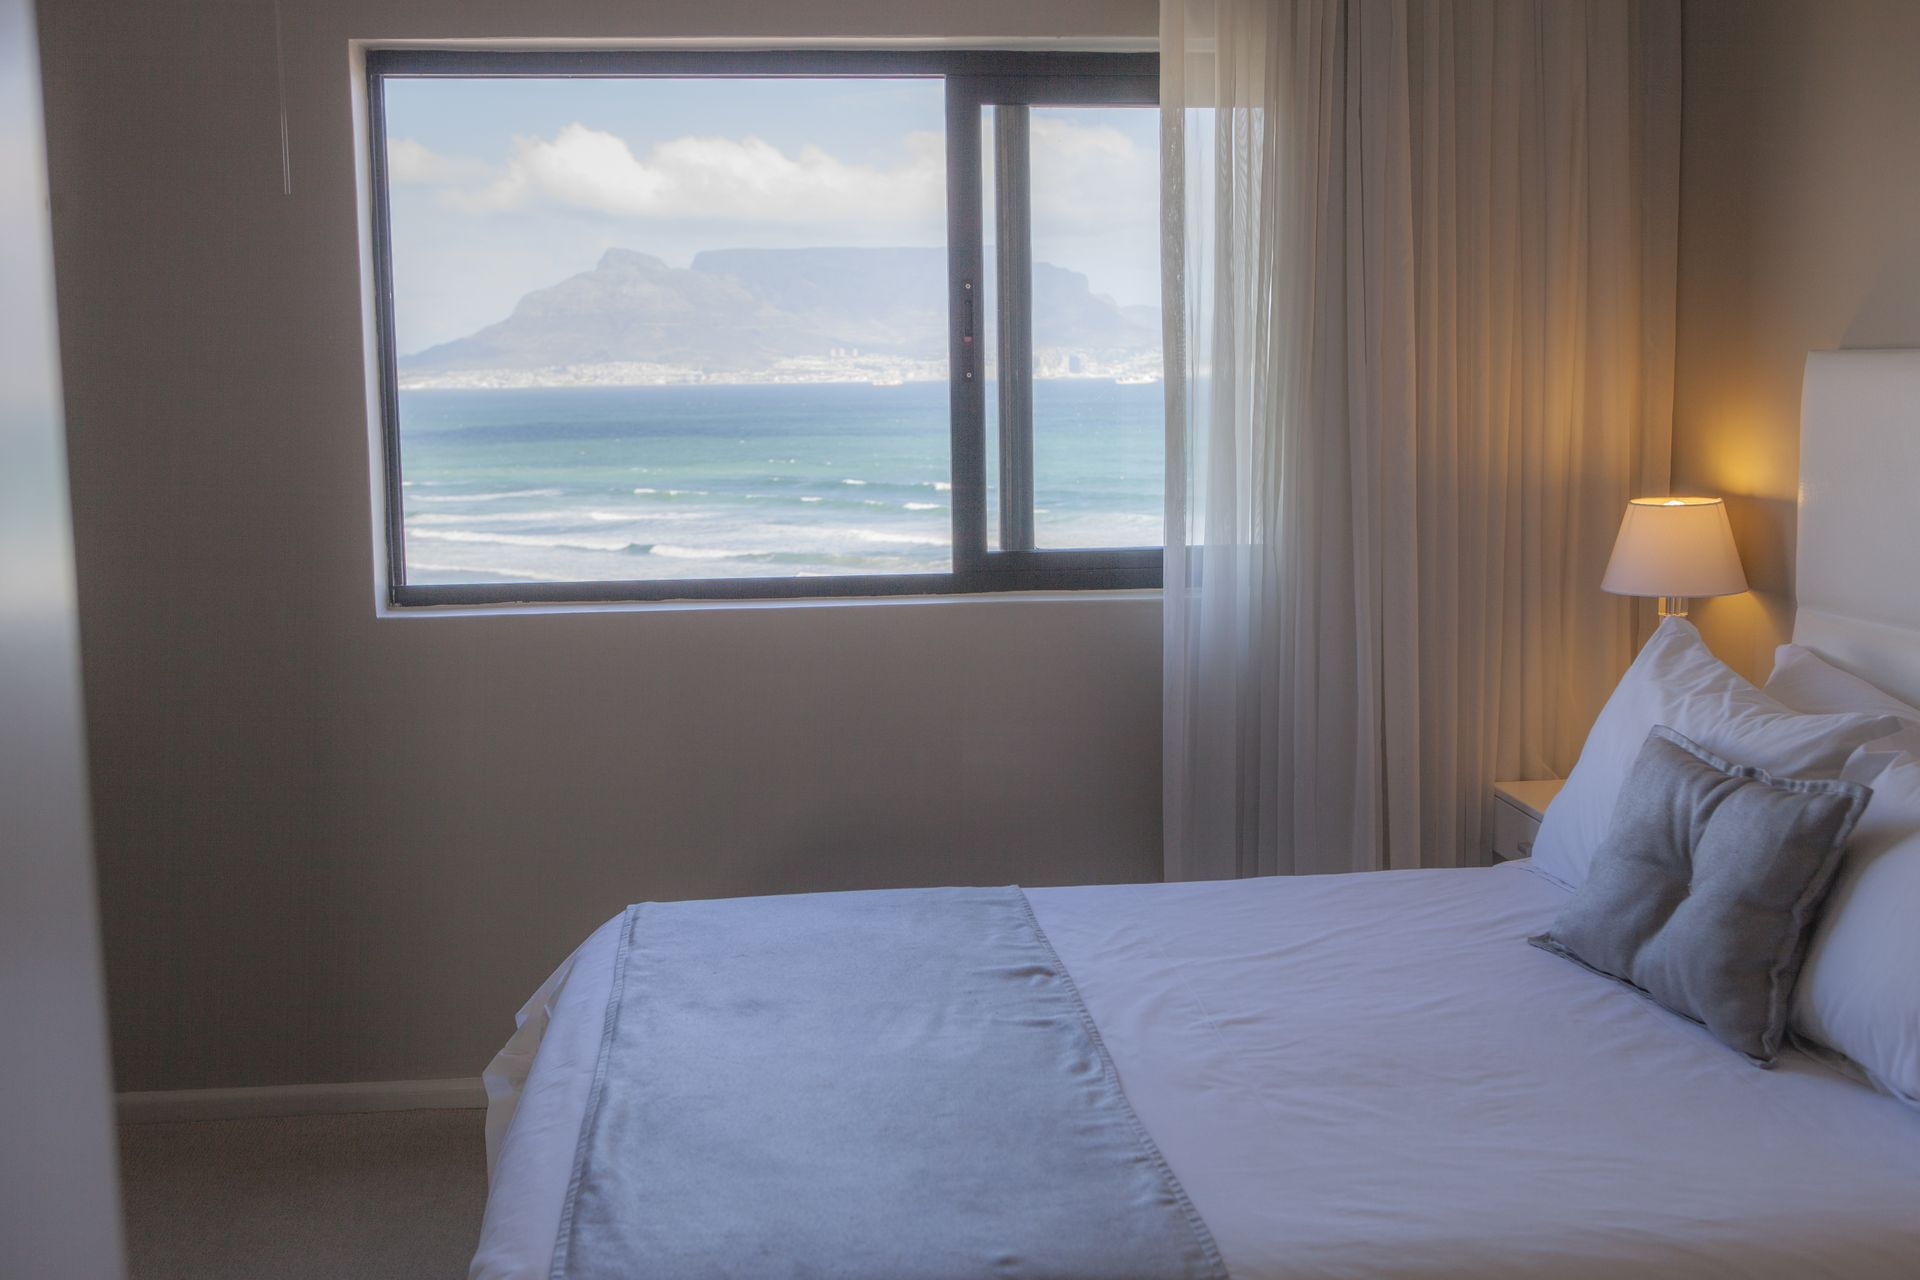 Aquarius Bloubergstrand Deluxe Suite, three bedroom, two bathrooms